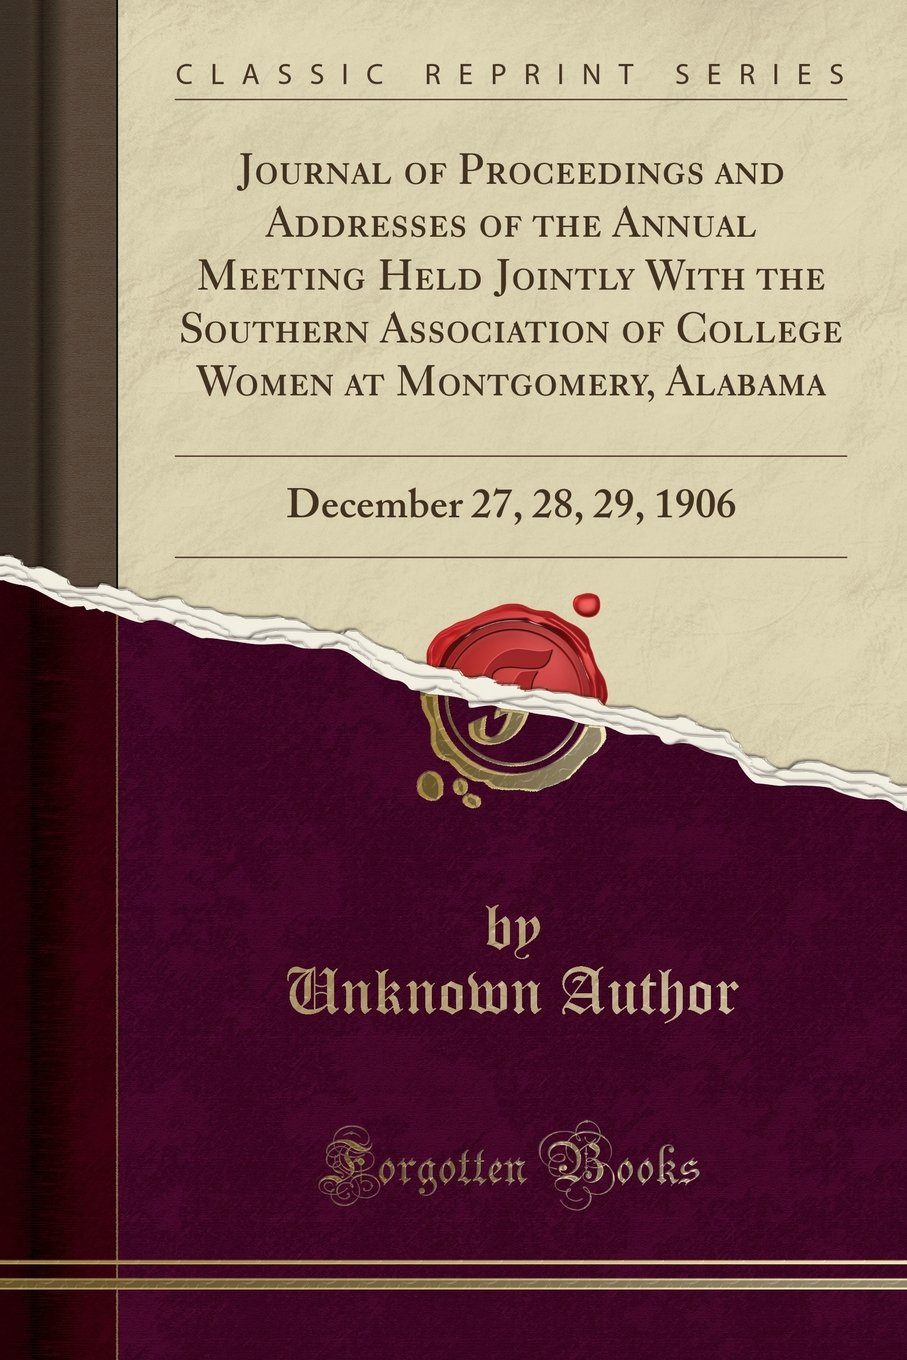 Journal of Proceedings and Addresses of the Annual Meeting Held Jointly With the Southern Association of College Women at Montgomery, Alabama: December 27, 28, 29, 1906 (Classic Reprint) PDF